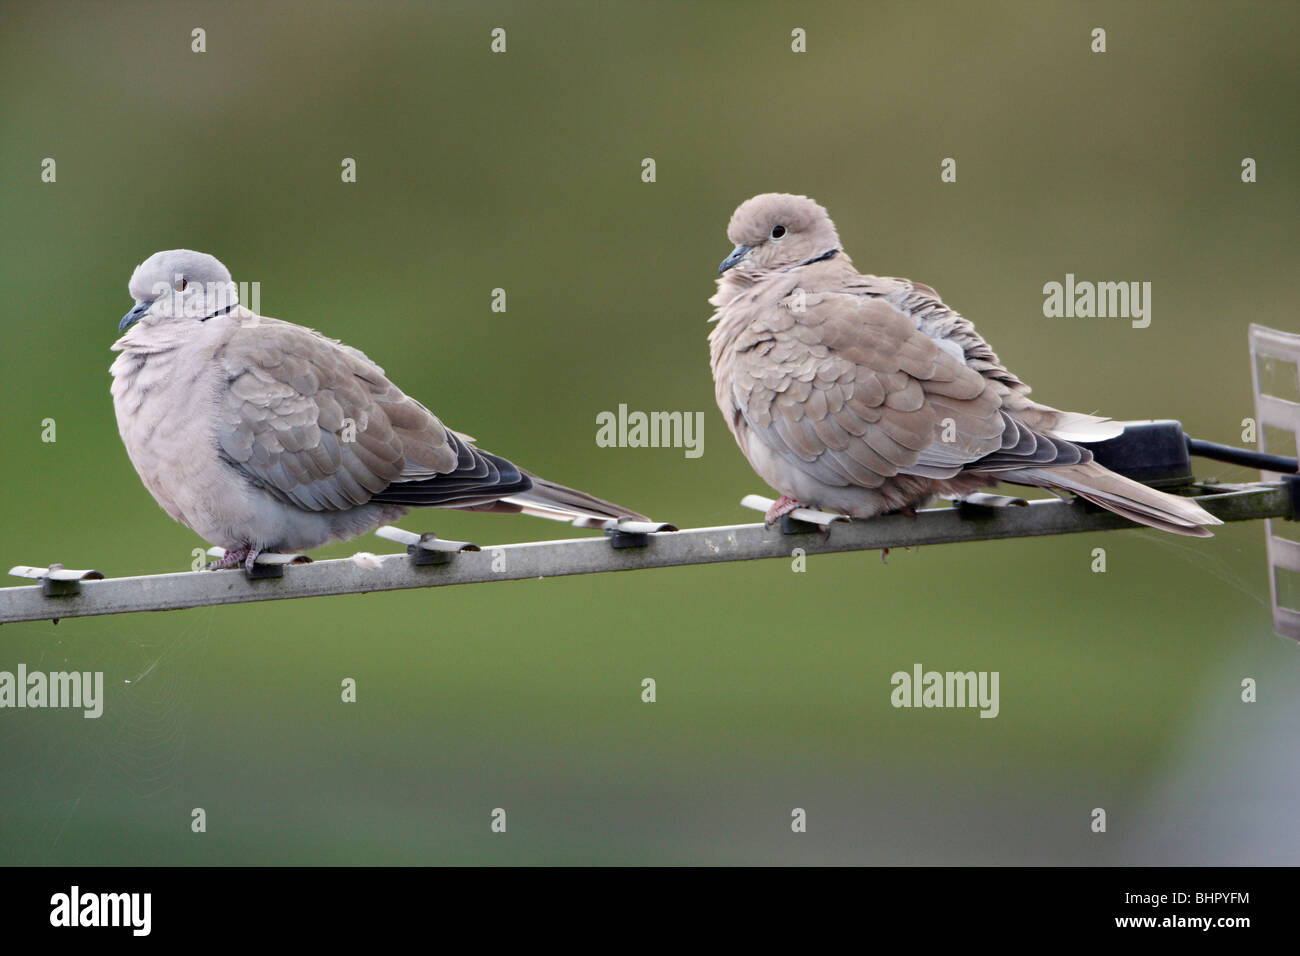 Collard Dove (Streptopelia decaocta), pair perched on TV aerial, Northumberland, England, UK  - Stock Image